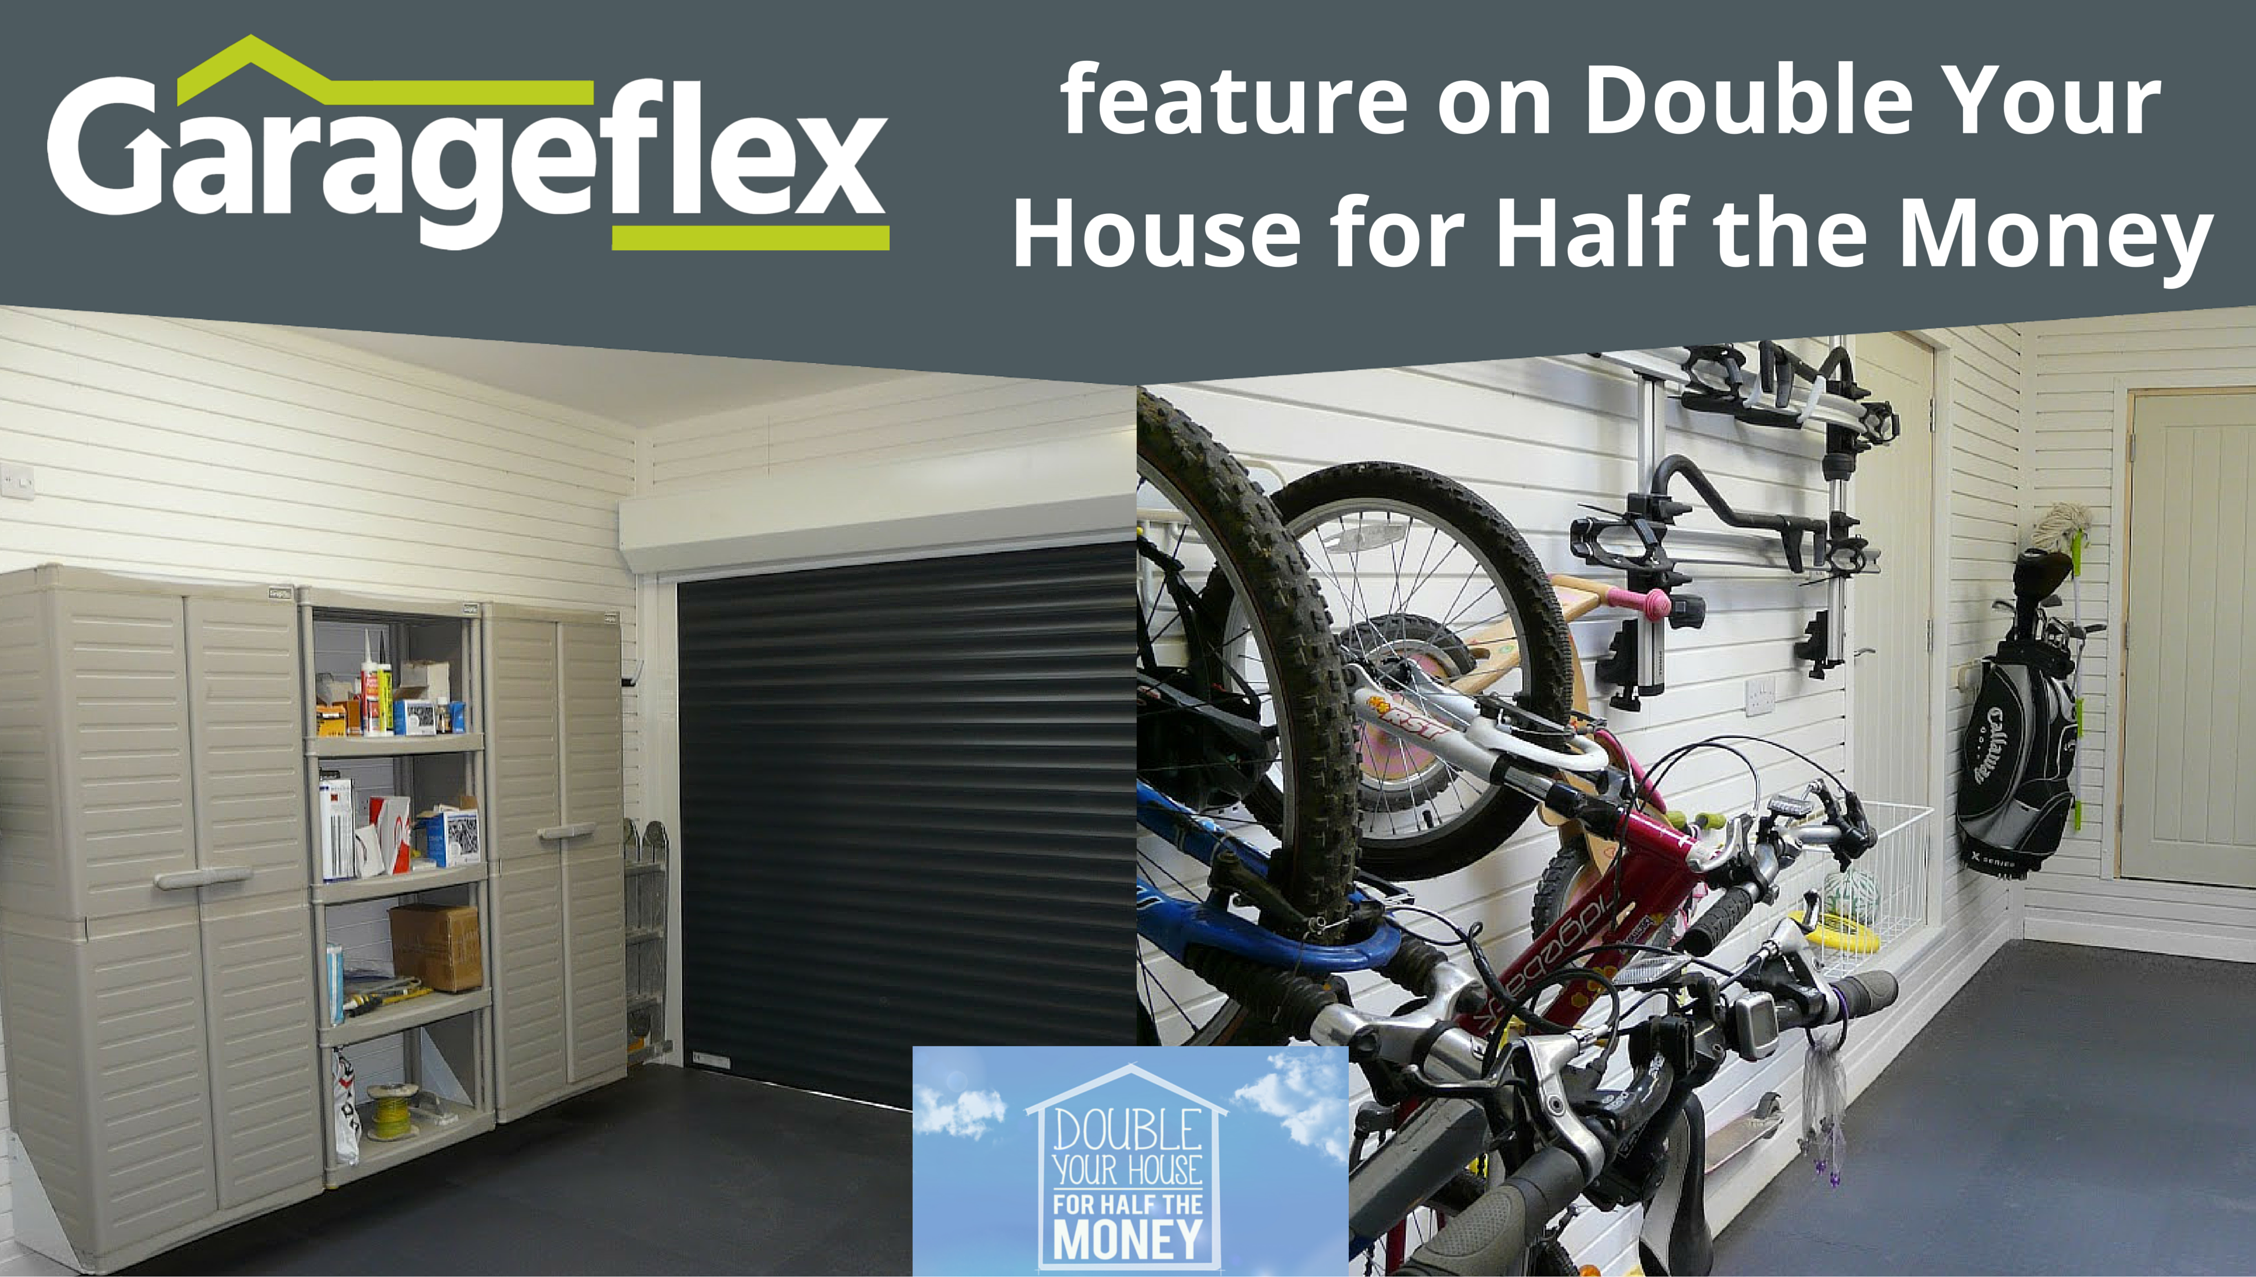 Garageflex feature on Double Your House for Half the Money